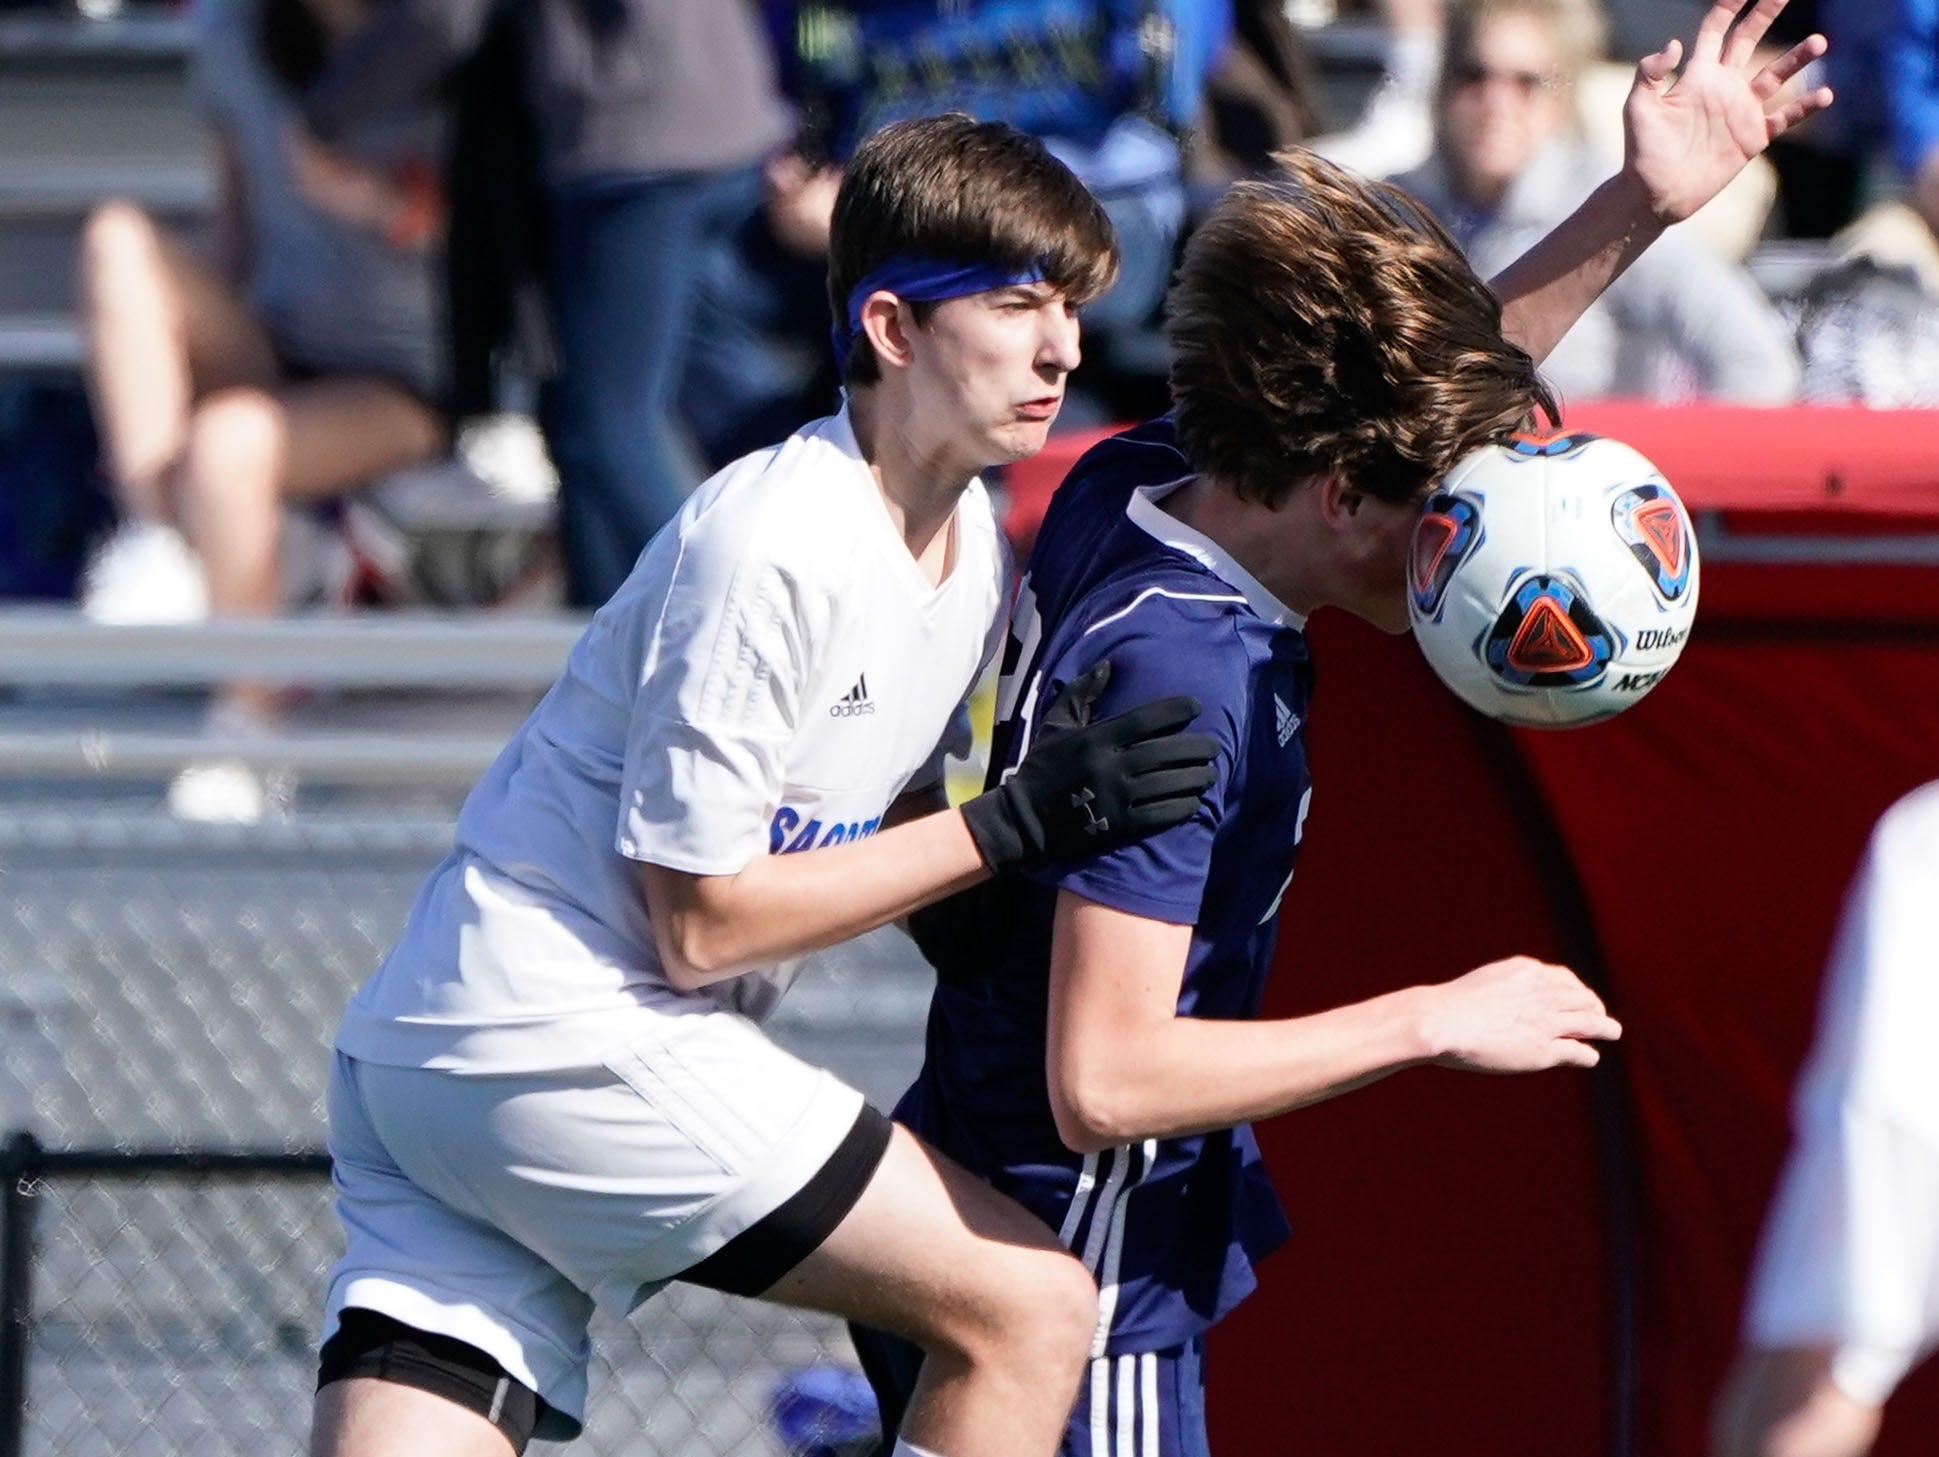 St. Andrew's Chadwick Collins (22) heads a ball against Sacred Heart during the MHSAA 1A,2A,3A  Boys Soccer Championships held at Brandon High School in Brandon, MS, Saturday February 9, 2019.(Bob Smith-For The Clarion Ledger)